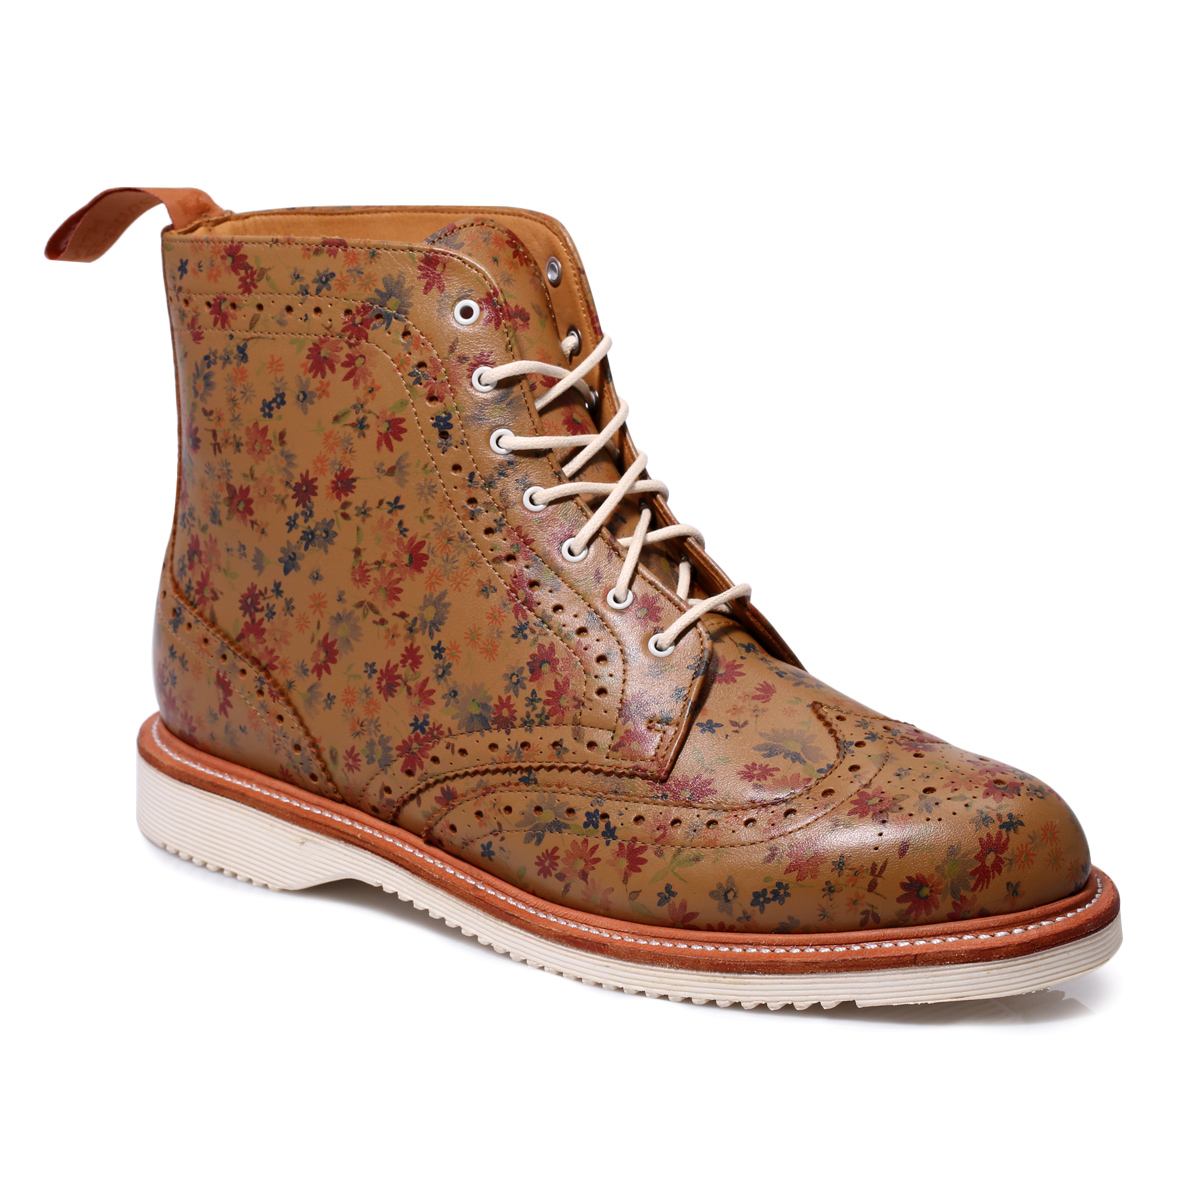 Dr Martens Brown Bentley Leather Brogue Ankle High Boots Shoes ...